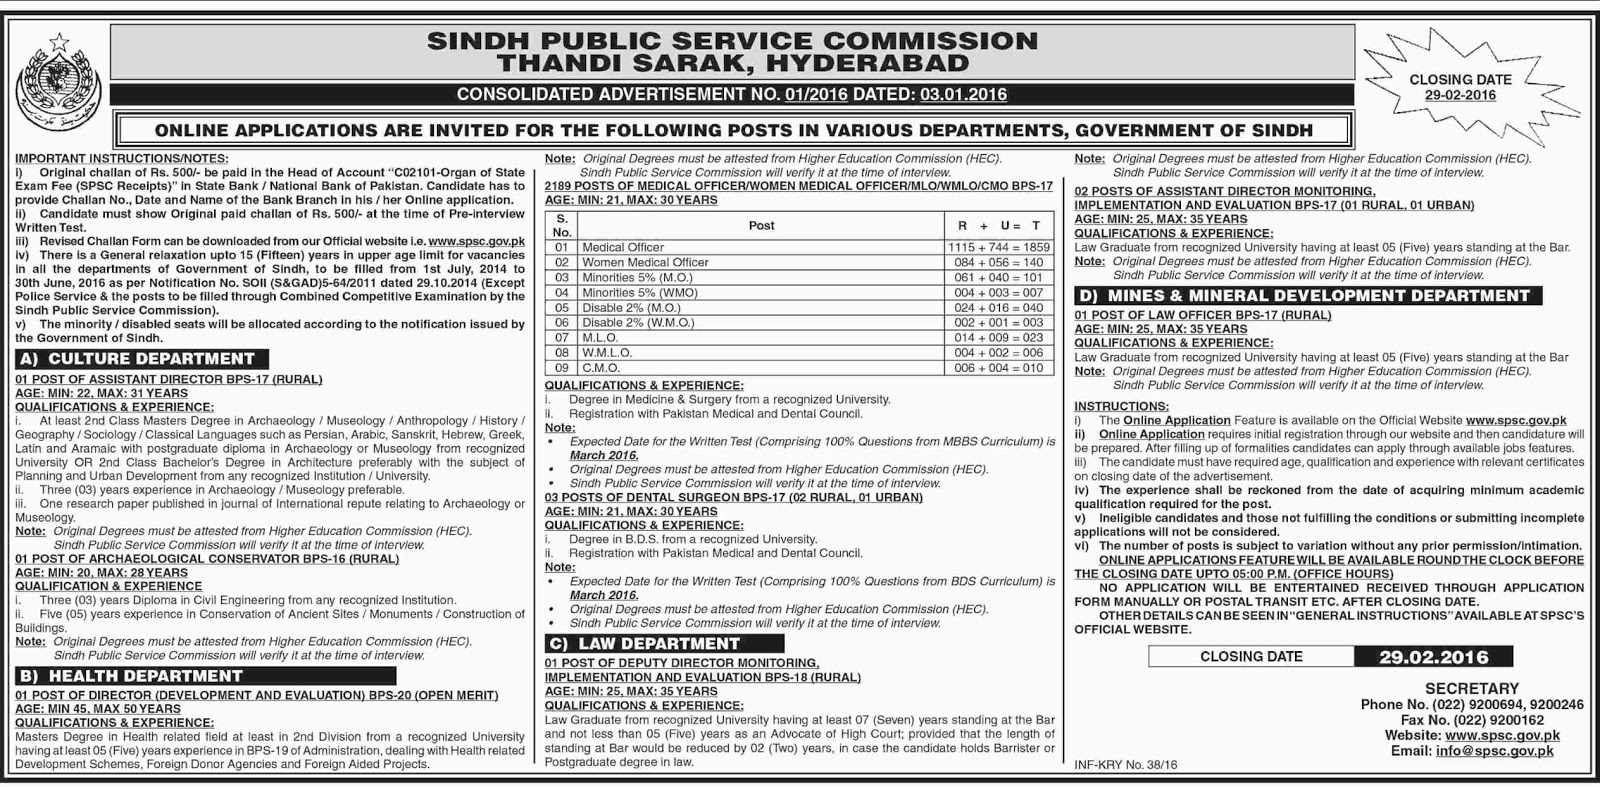 MBBS Doctors Jobs in Sindh Public Service Commission 2016